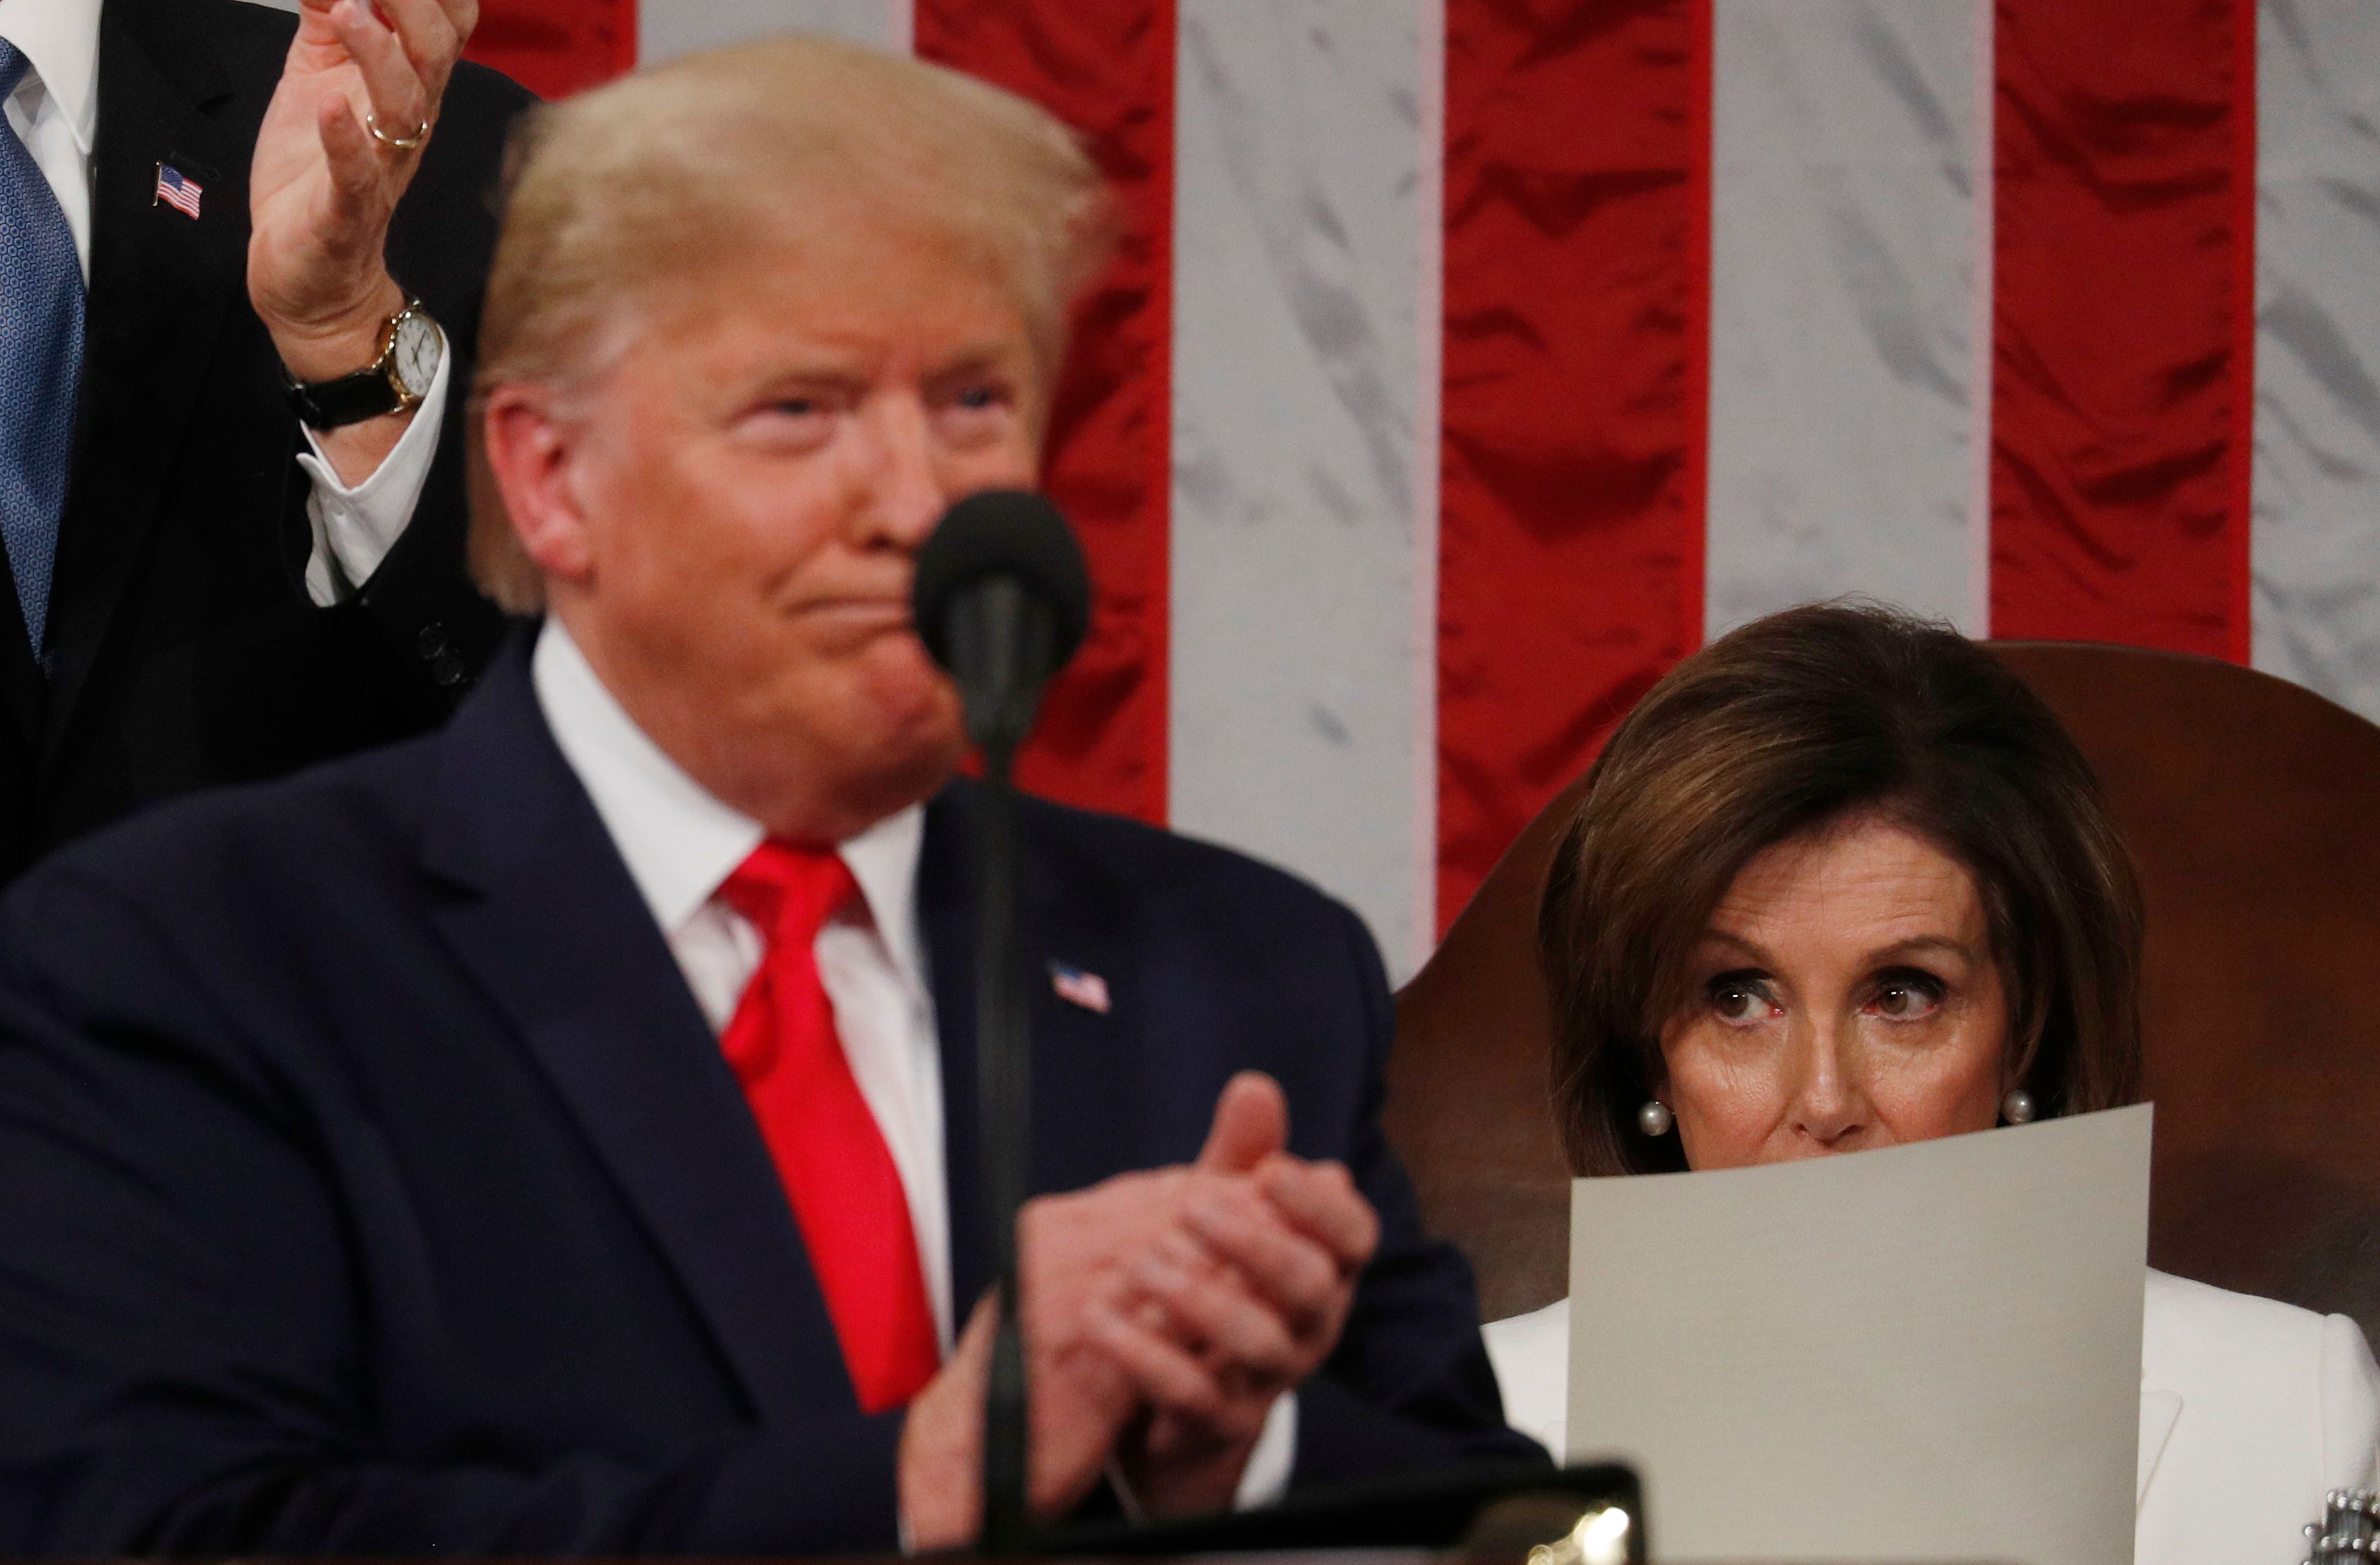 Speaker of the House Nancy Pelosi looks at a copy of the speech as U.S. President Donald Trump delivers his State of the Union address to a joint session of the U.S. Congress in the House Chamber of the U.S. Capitol in Washington, U.S. Feb. 4, 2020. REUTERS/Leah Millis/POOL